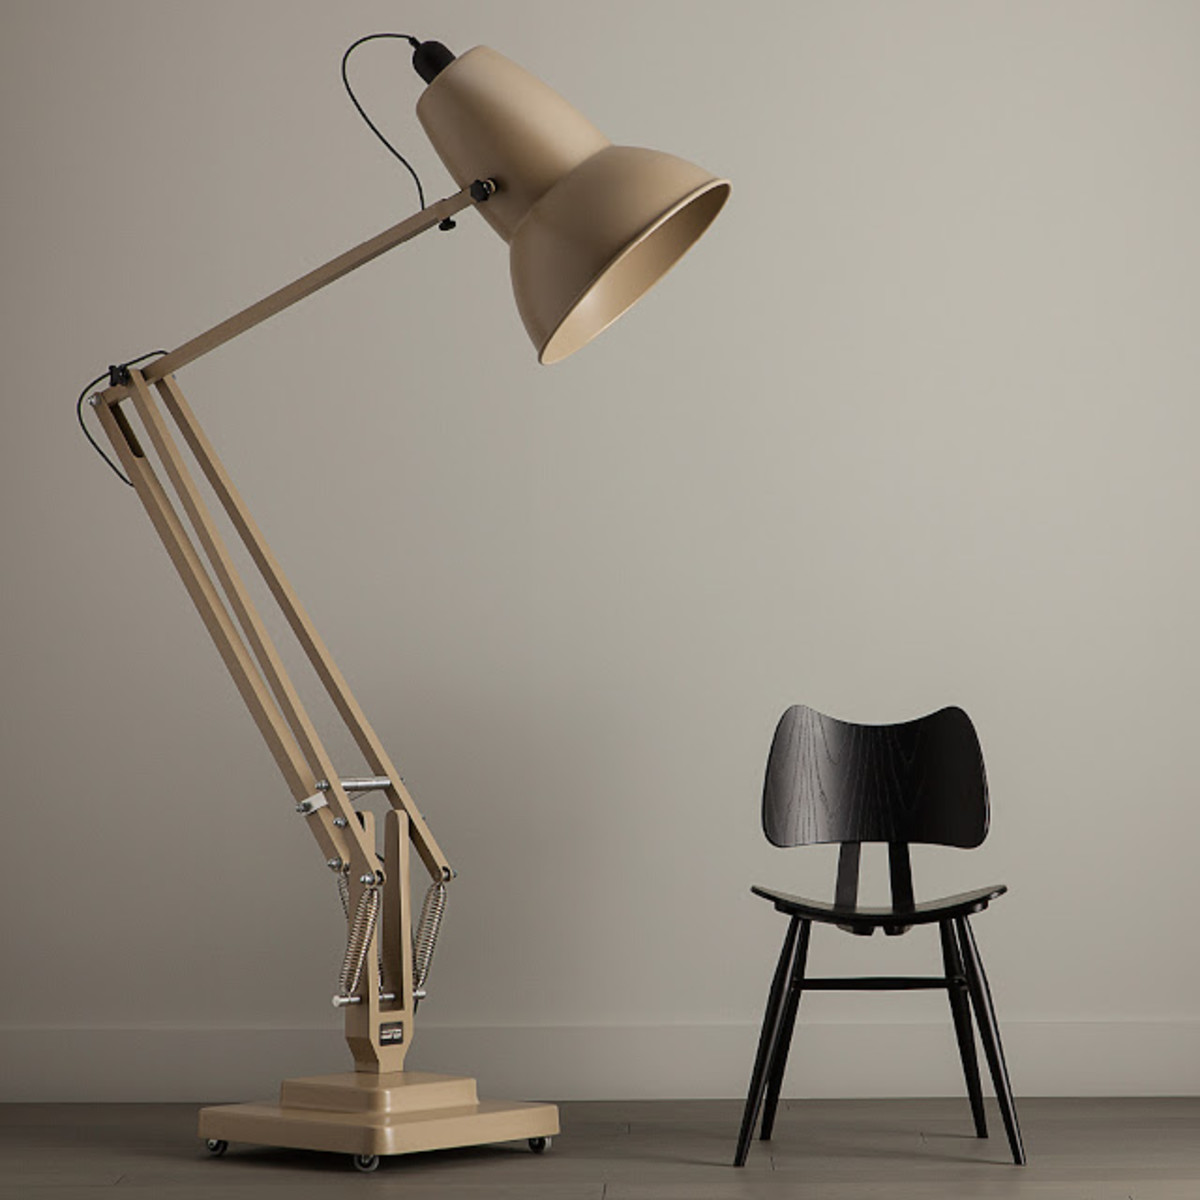 Oversized floor lamp by george carwardine airows really cool oversized floor lamp by designer george carwardine kind of a cool and funky look for an otherwise standard type of furniture aloadofball Image collections